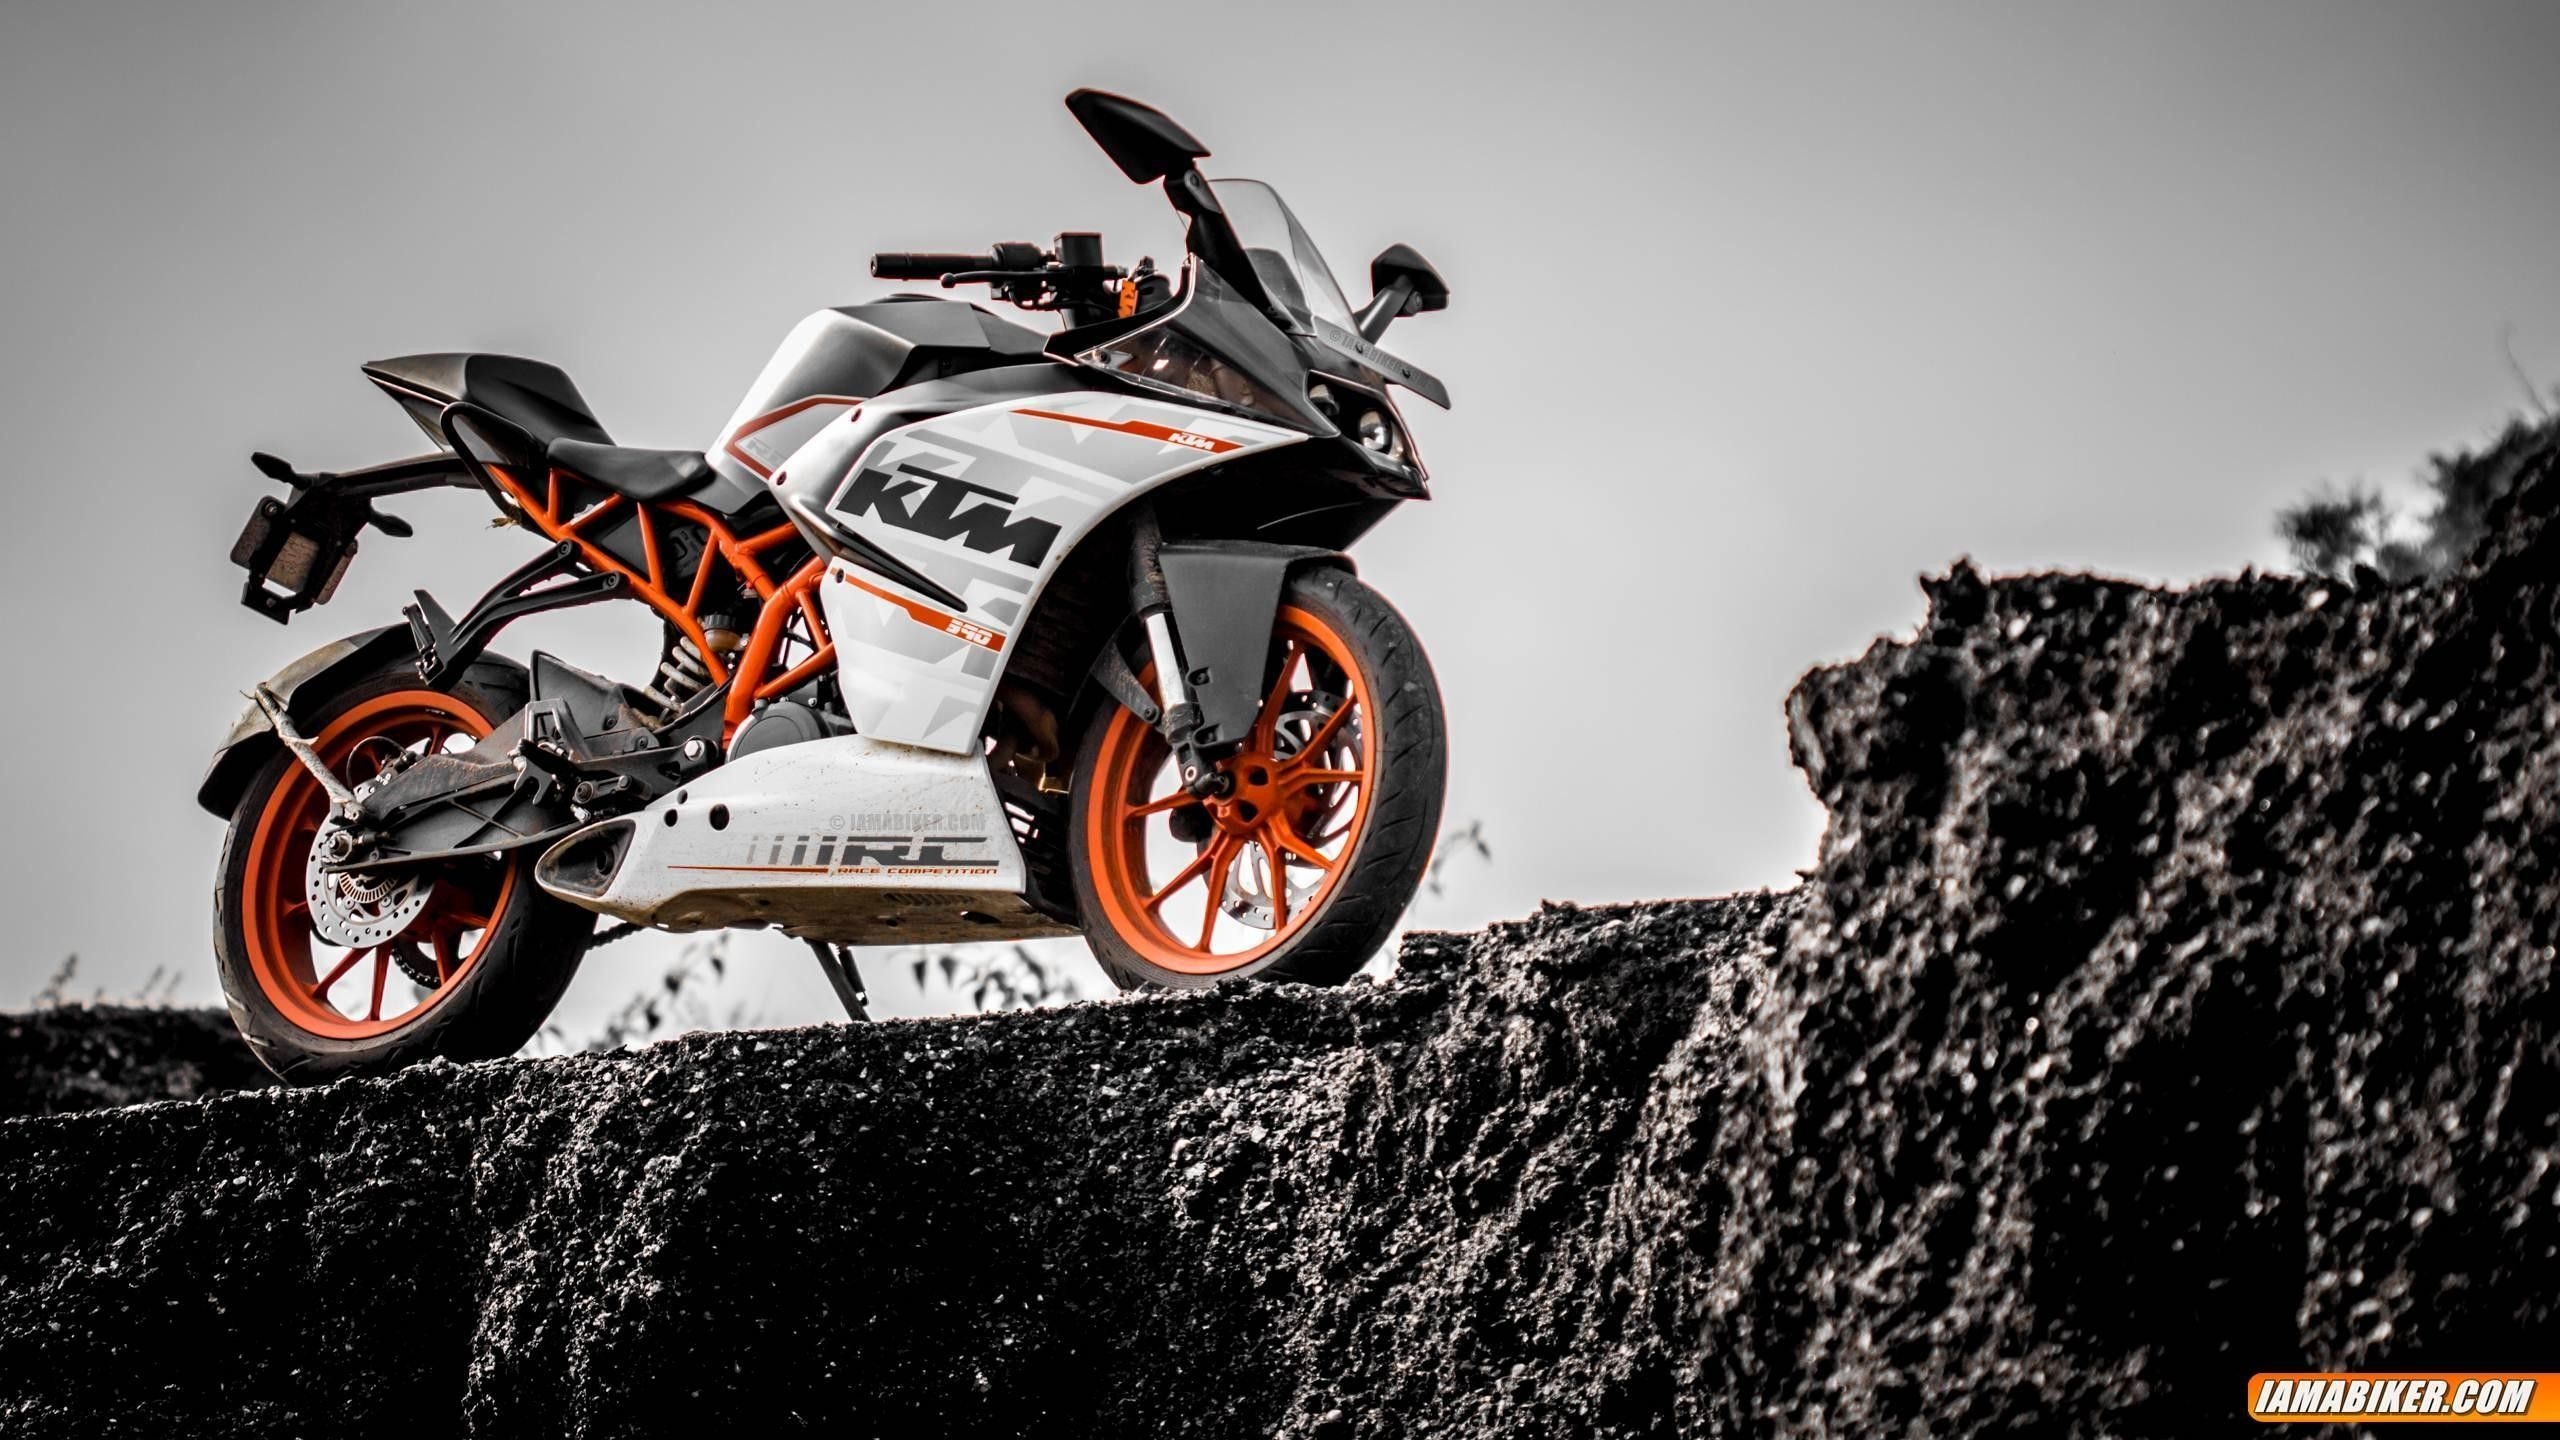 Pin By Kommireddy Vandhana On Ranga In 2020 Ktm Duke Bike Ktm Rc